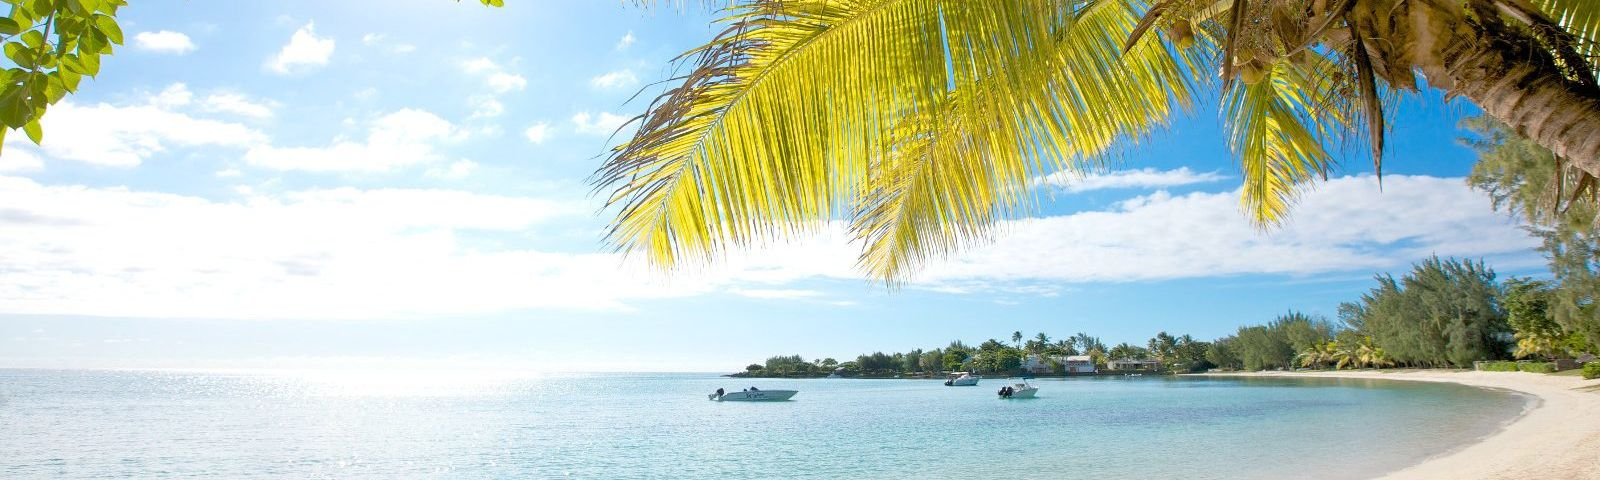 Mauritius Tours - Best Time to Visit Mauritius